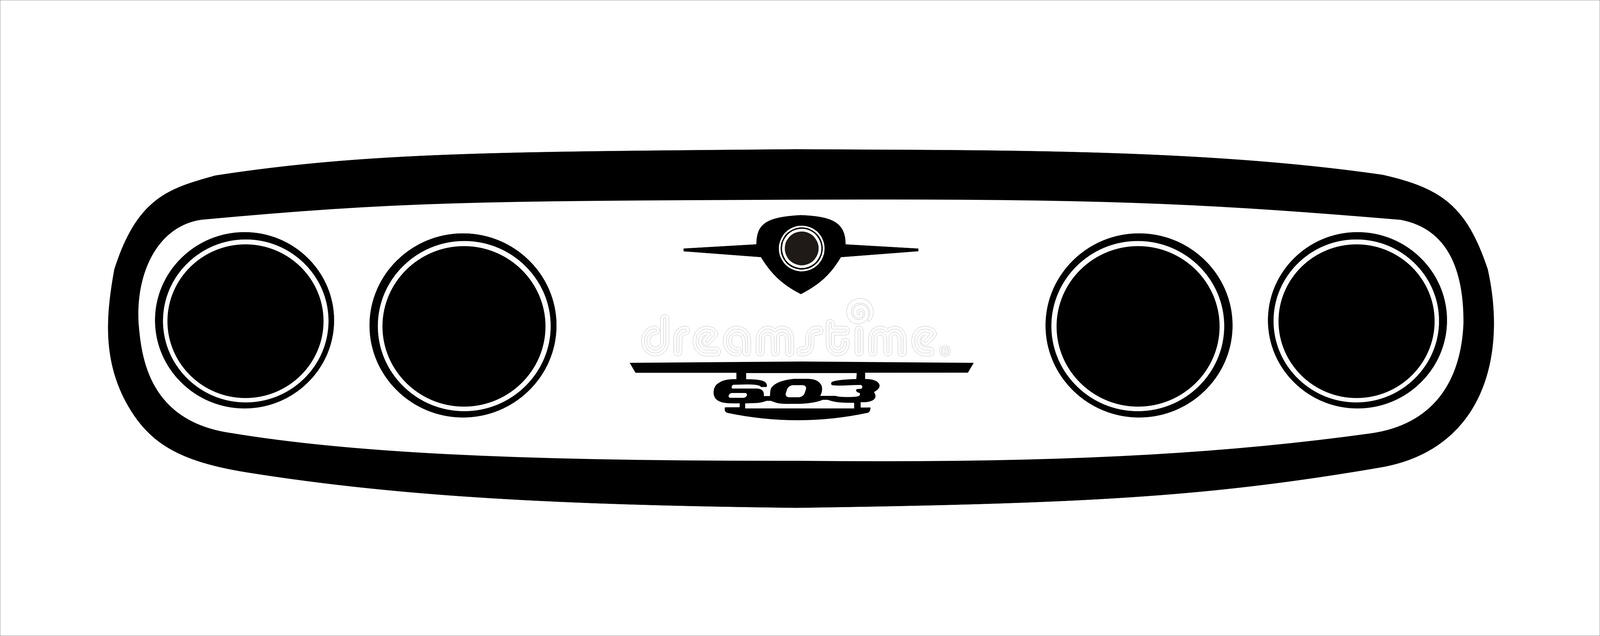 Tatra mask illustration royalty free stock image